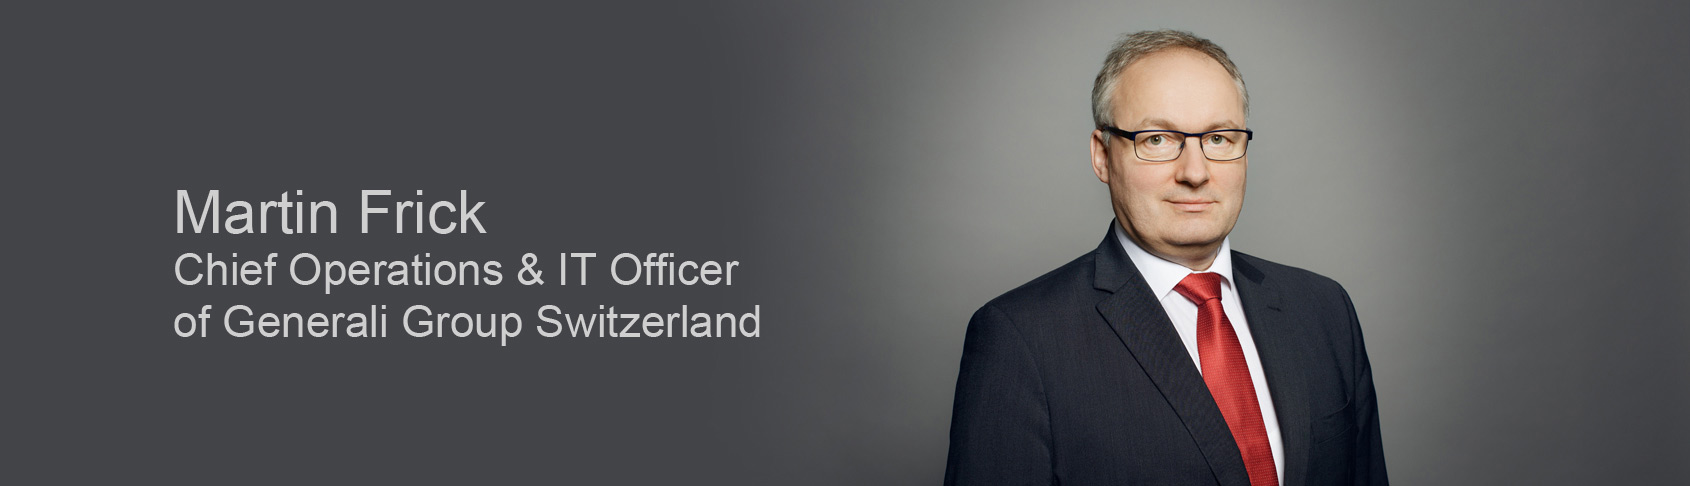 Frick Frankfurt martin frick to become chief operations it officer generali